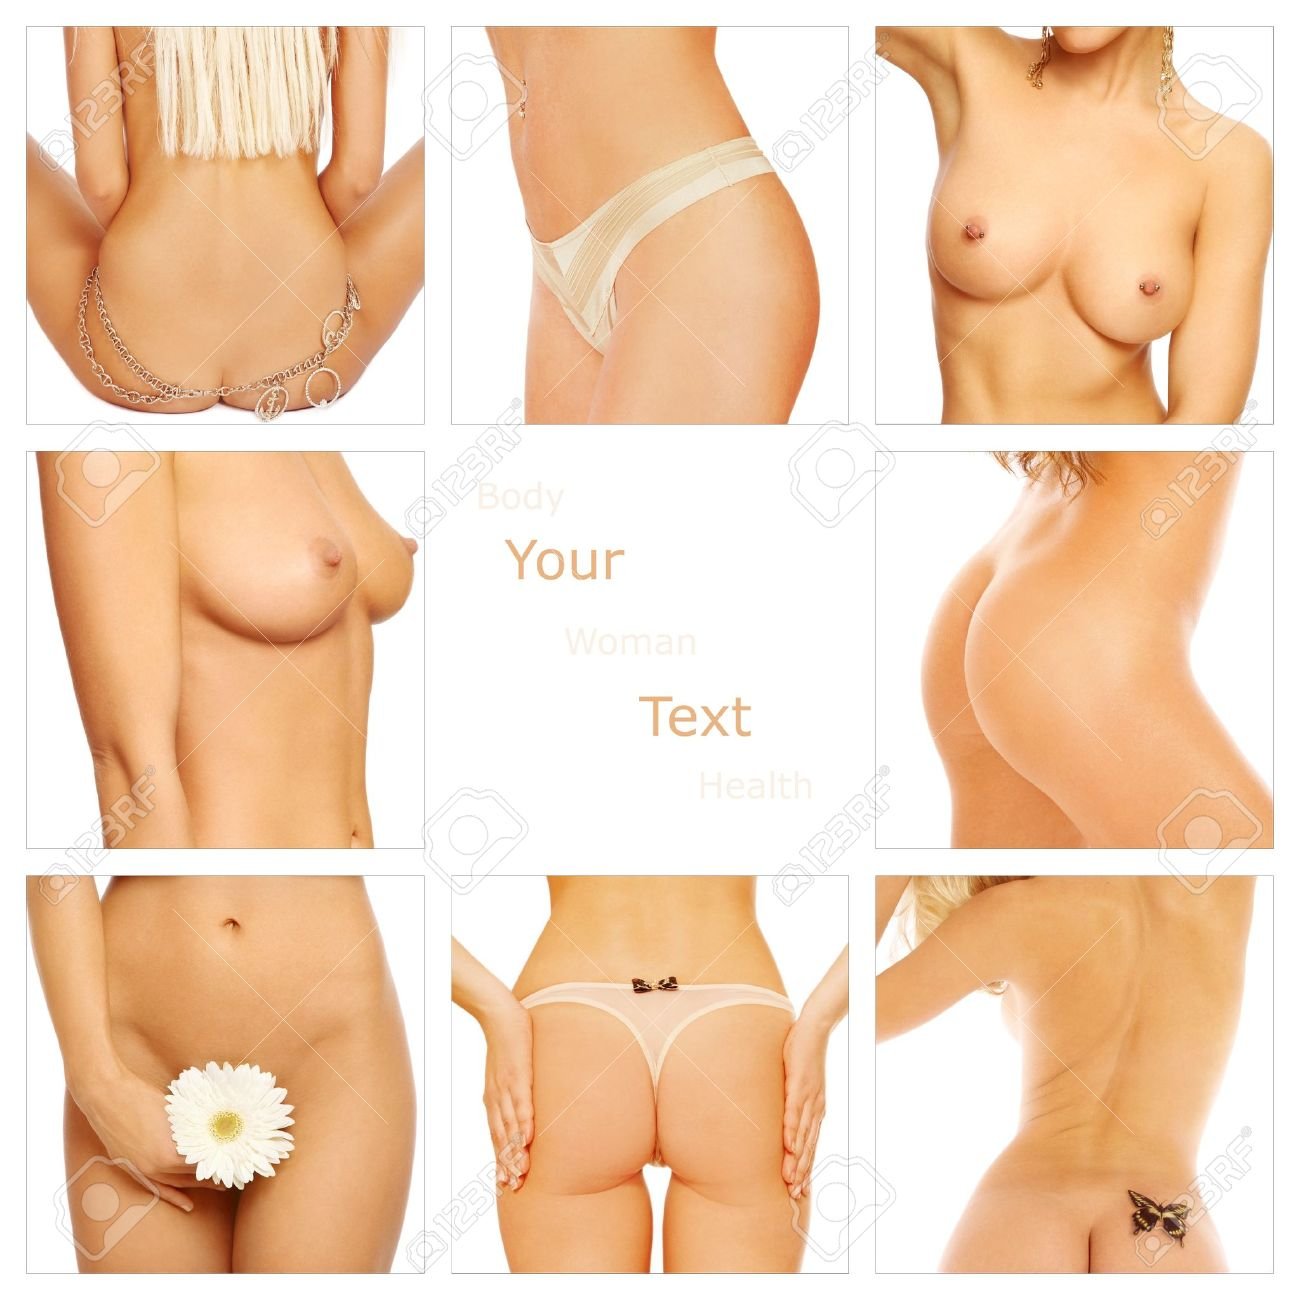 Collage with slim tanned women's body parts with copy space in center. Beauty, health, cosmetology. Stock Photo - 8786146